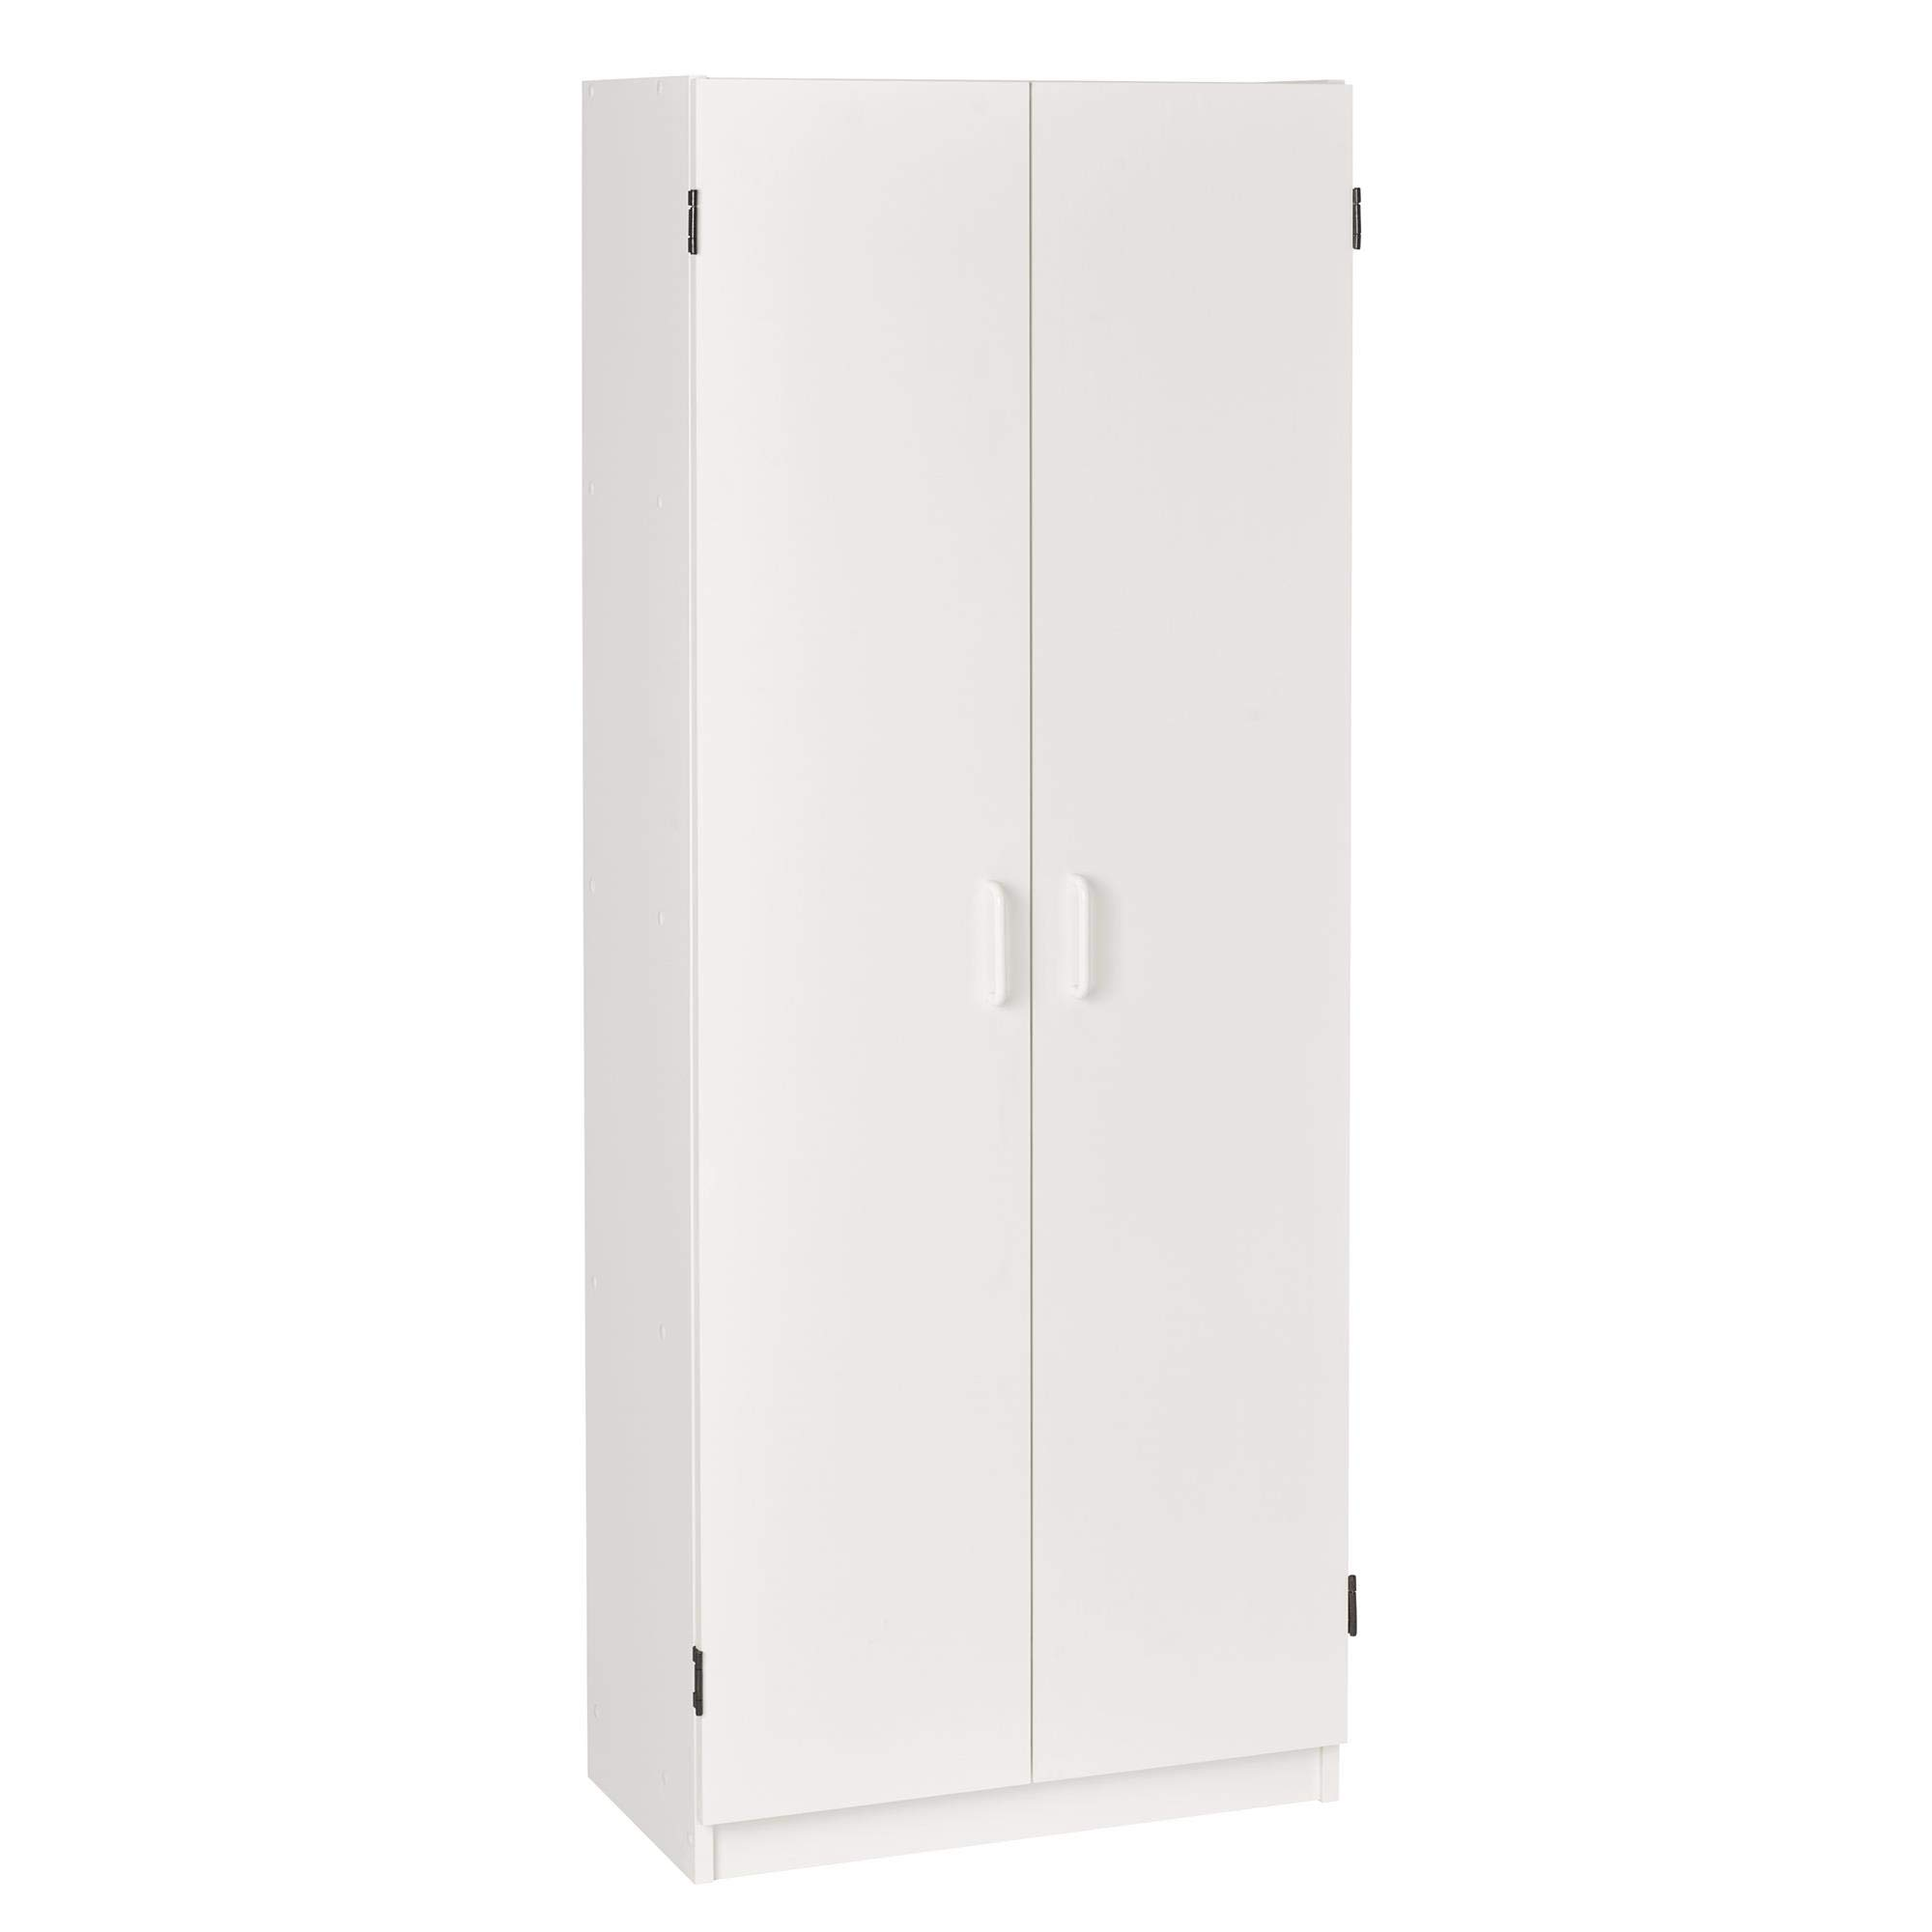 System Build Flynn Wooden Storage Cabinet, White by Ameriwood Home